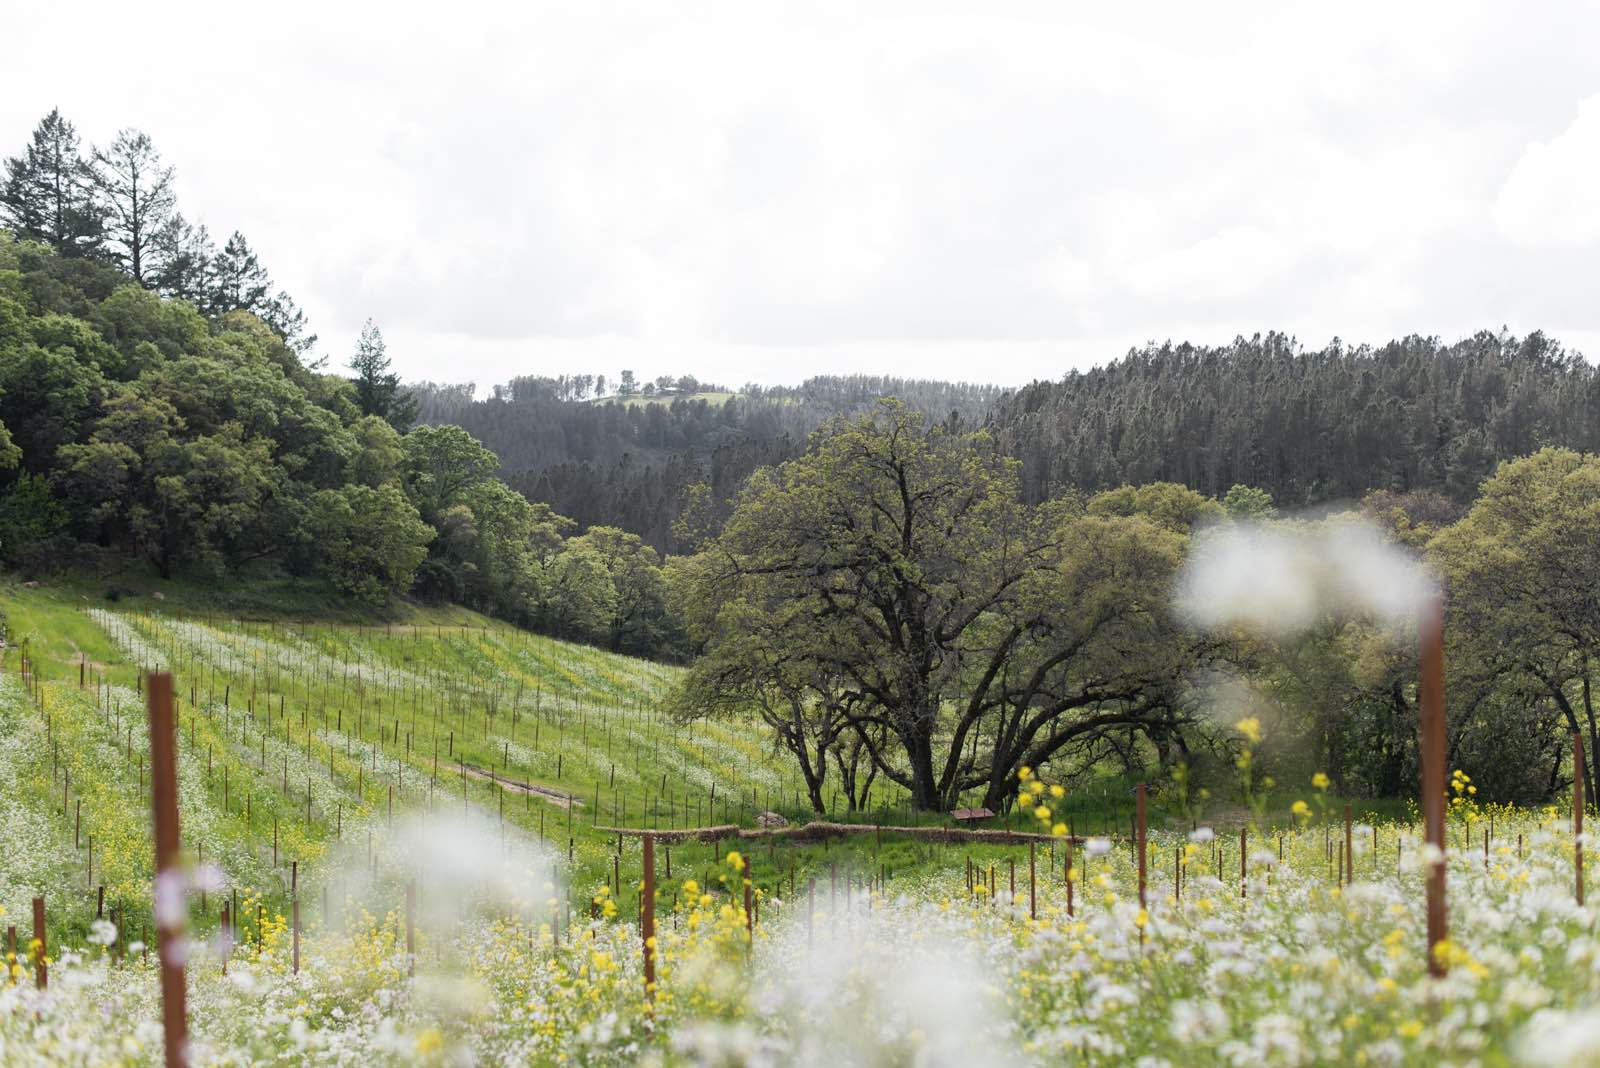 >The Meadow, 2017 - Mayacamas Vineyards